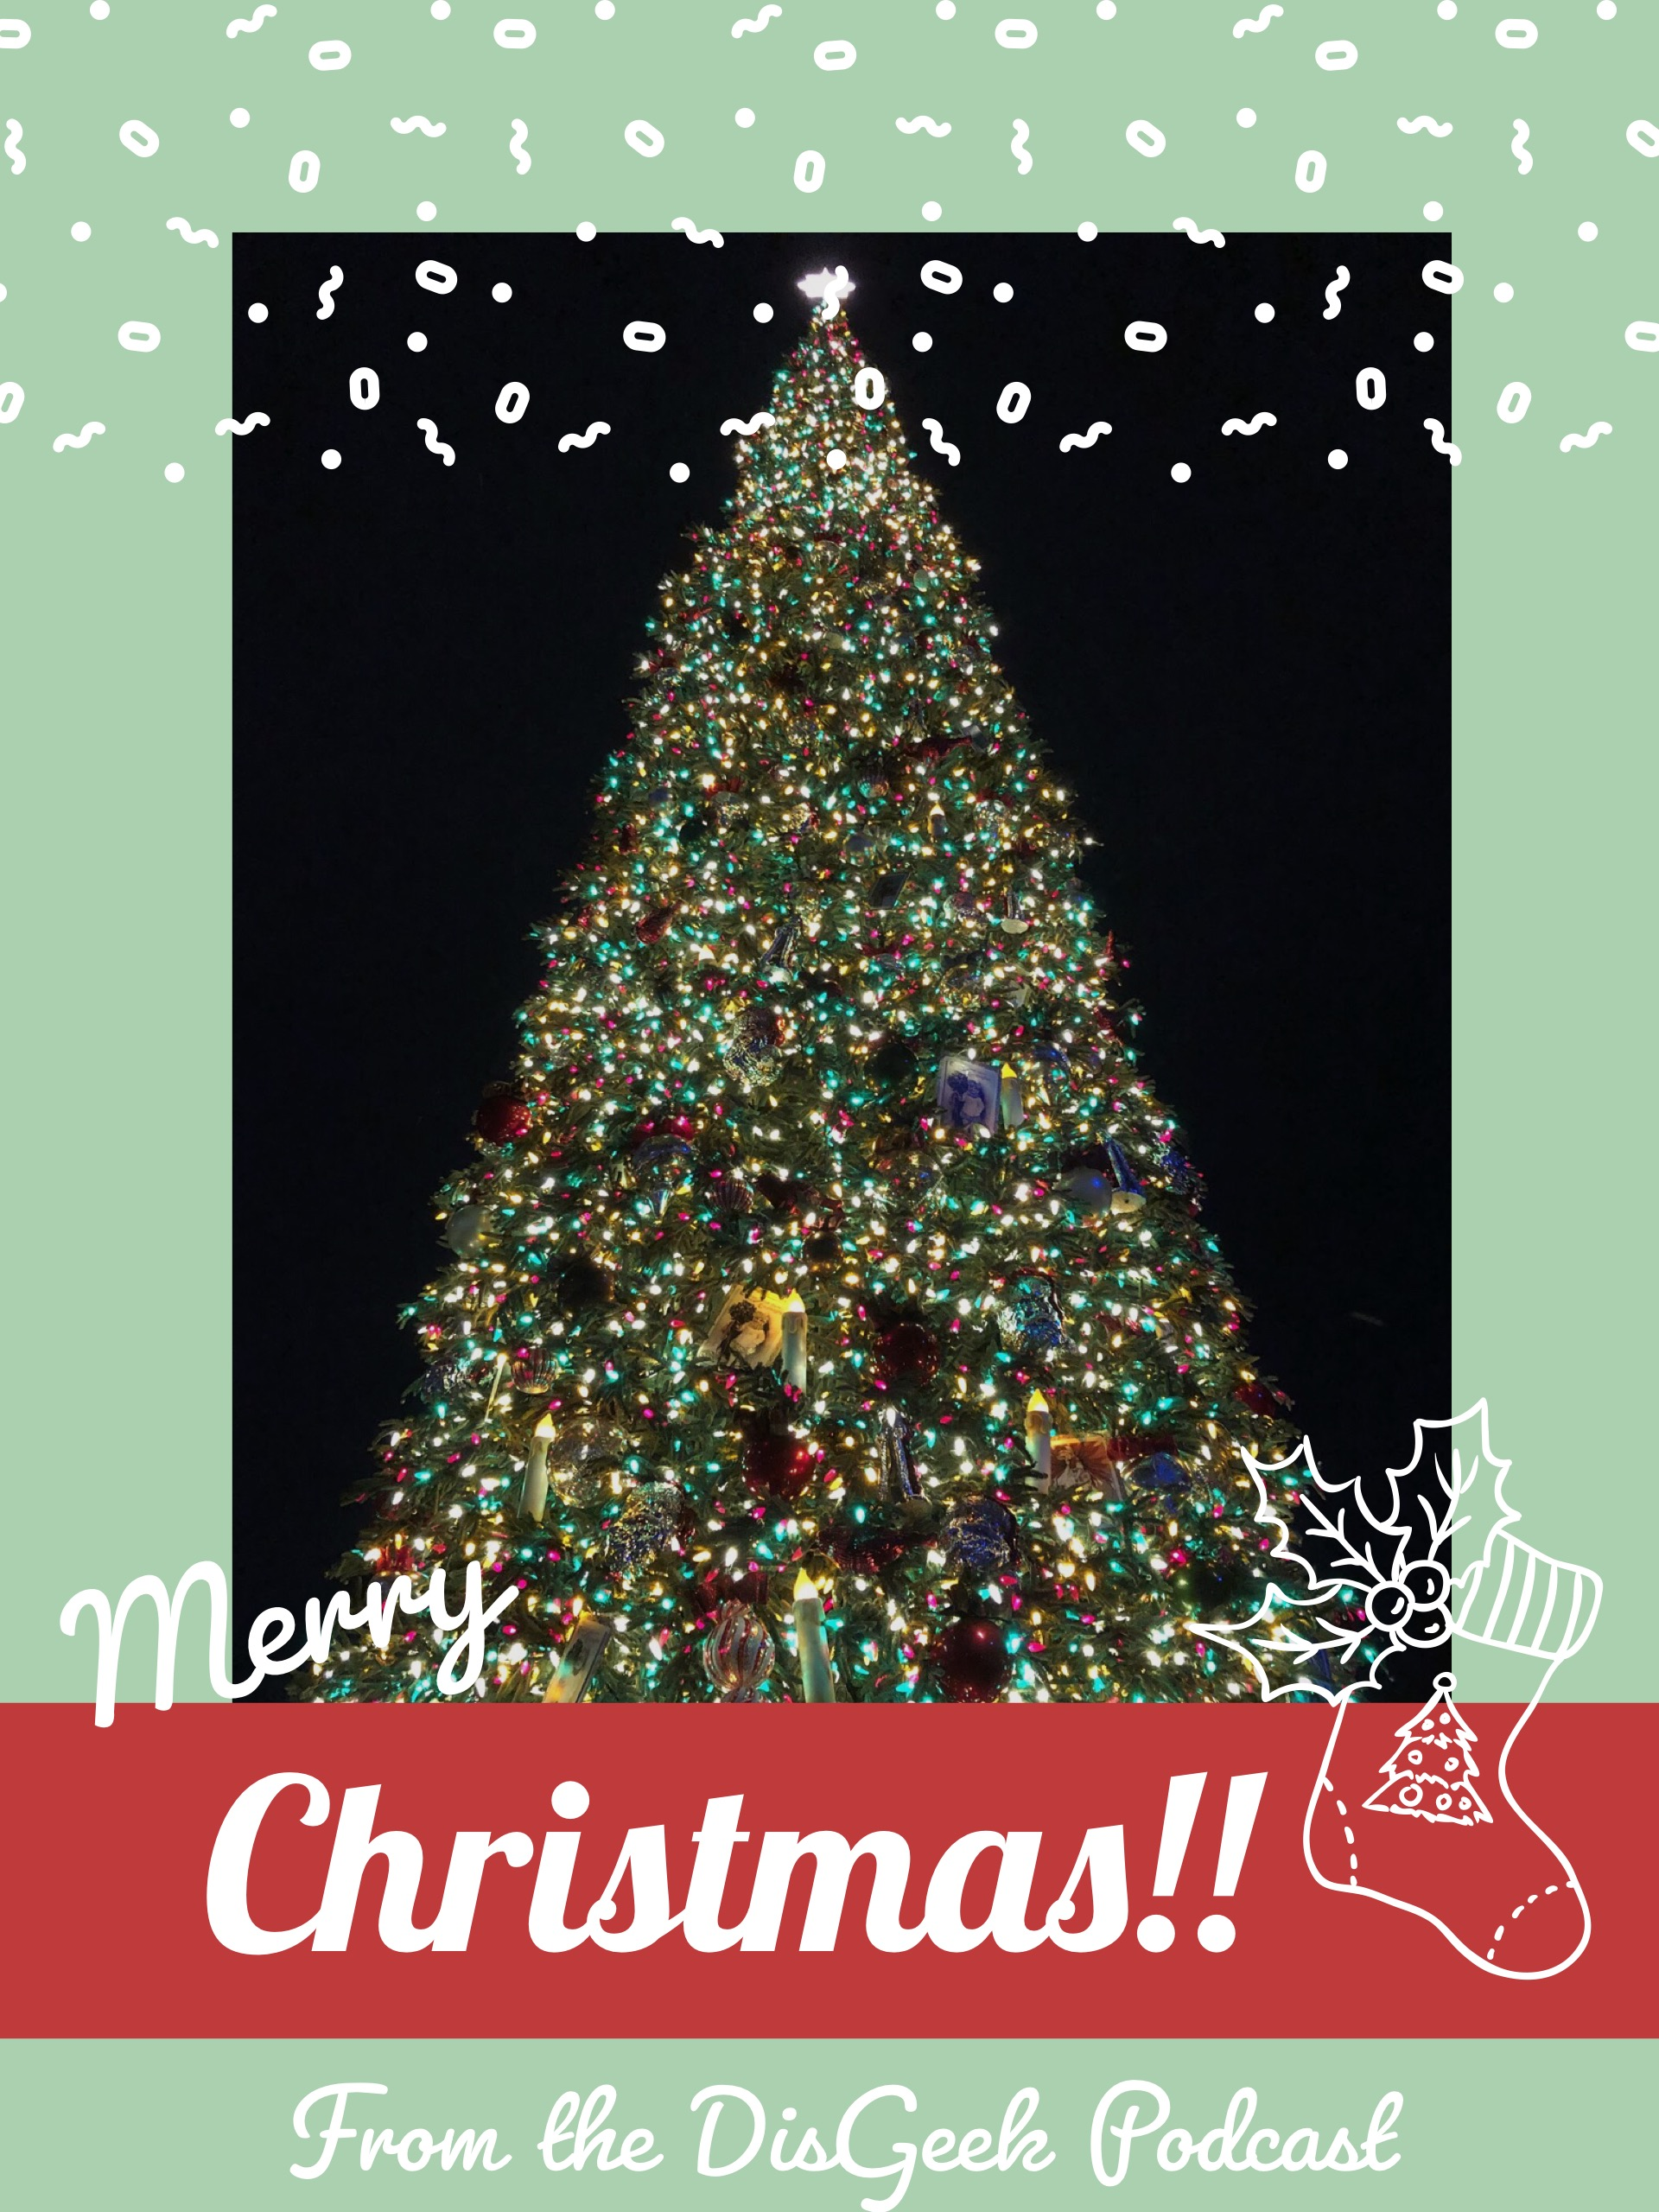 Merry Christmas from the DisGeek Podcast!